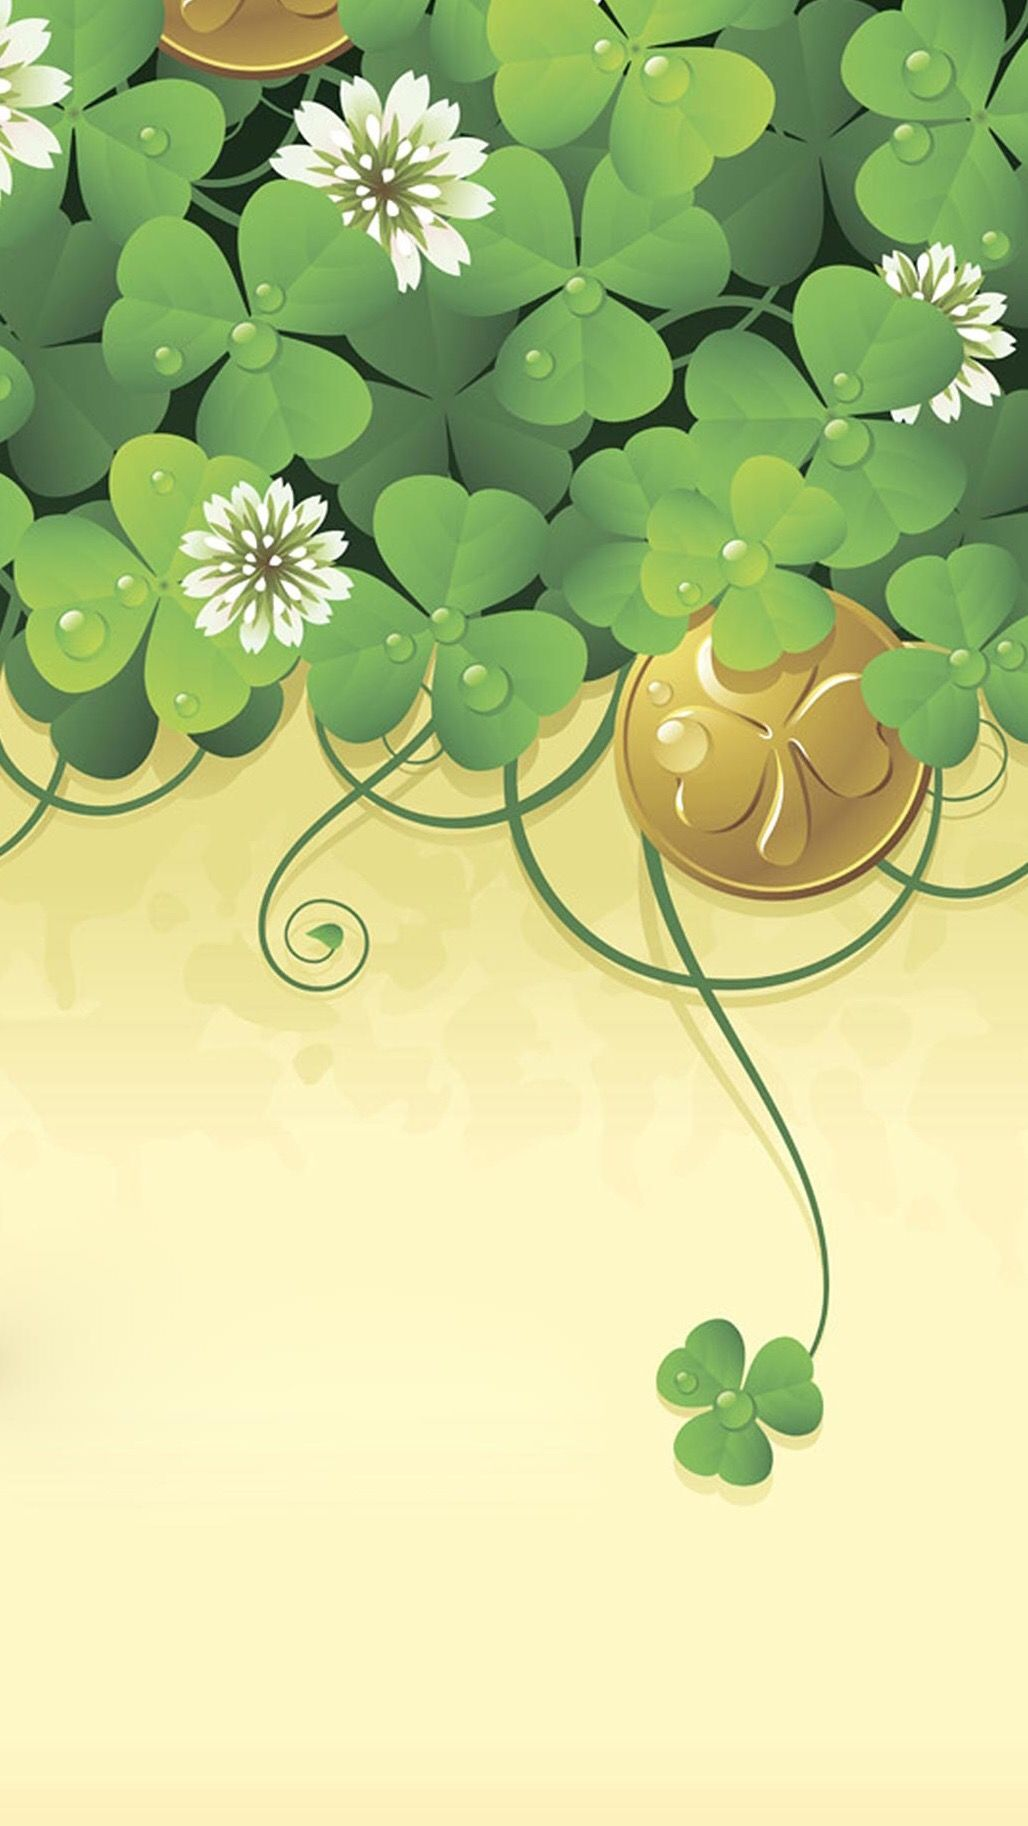 St Patrick's Day Wallpaper St patricks day wallpaper